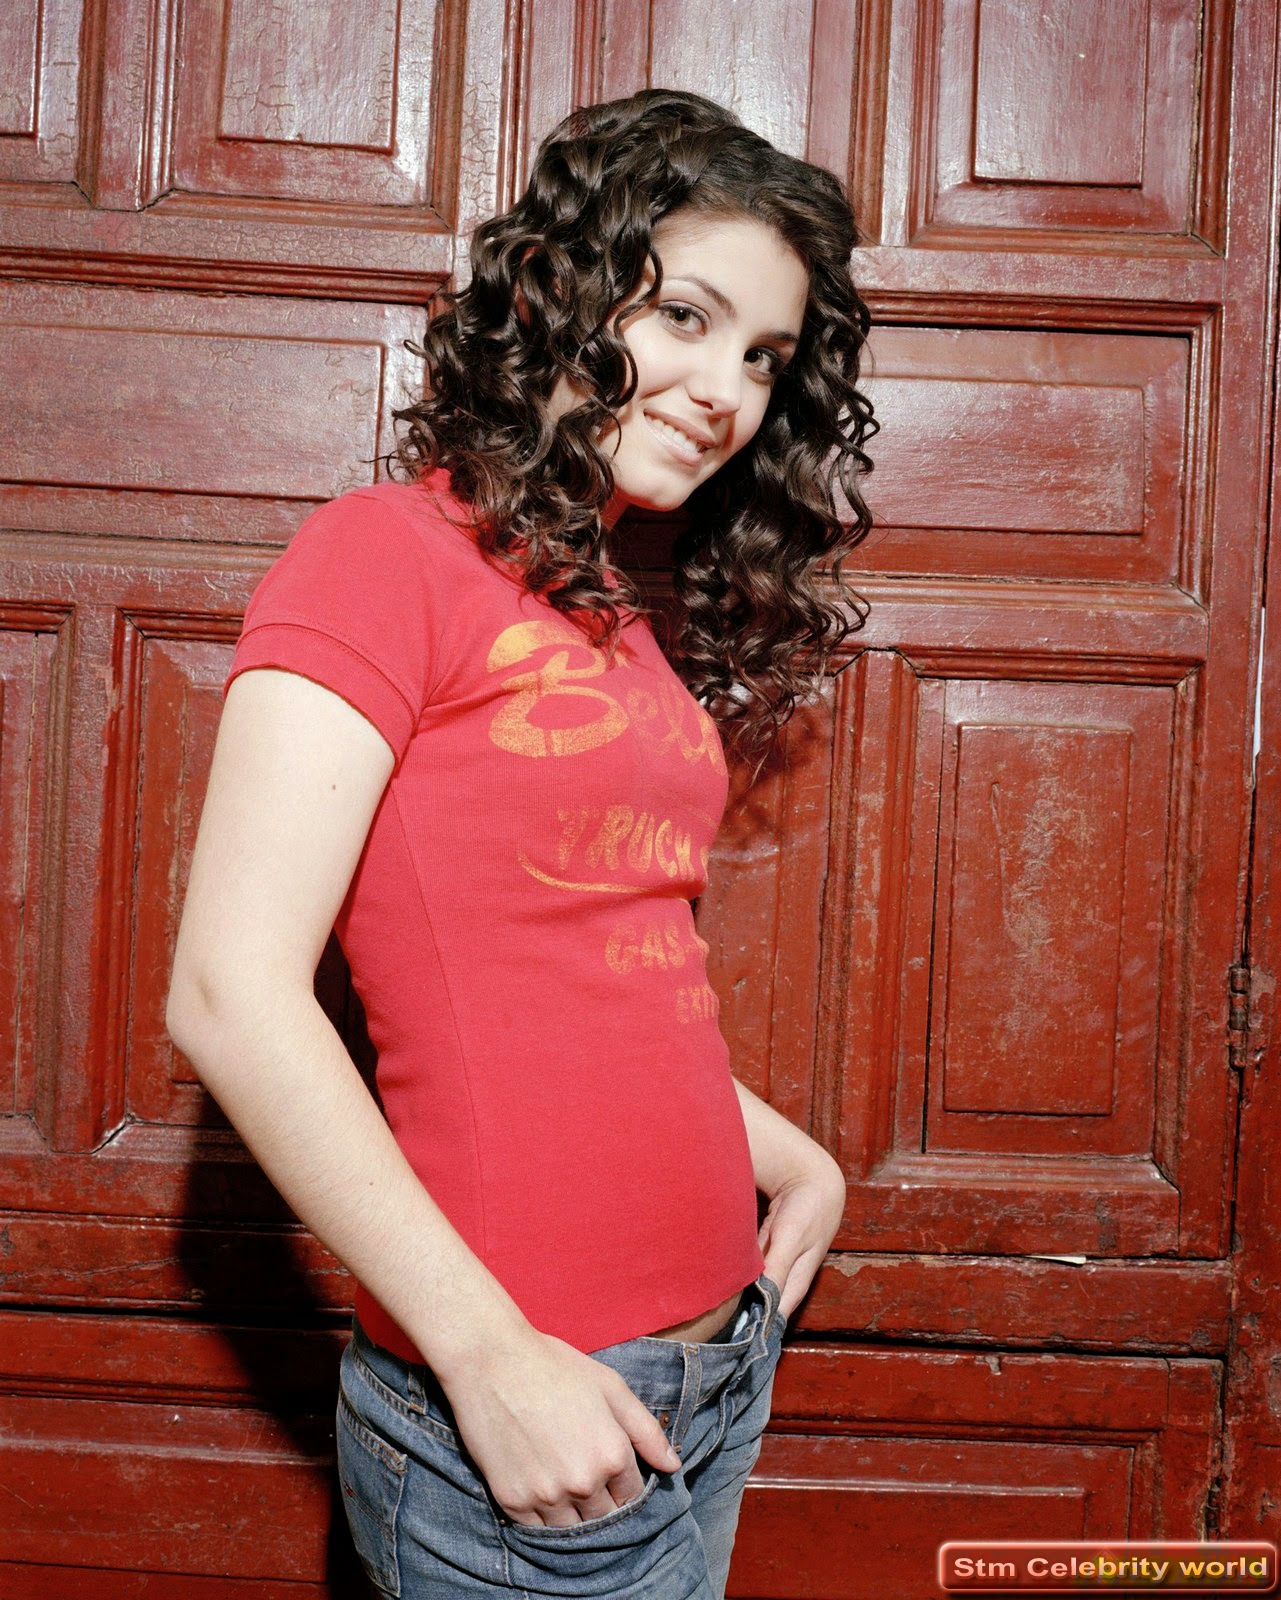 Tamanna Hd Wallpapers Free Download Katie Melua Top 35 Hot Hd Photos And Wallpaper Gallery